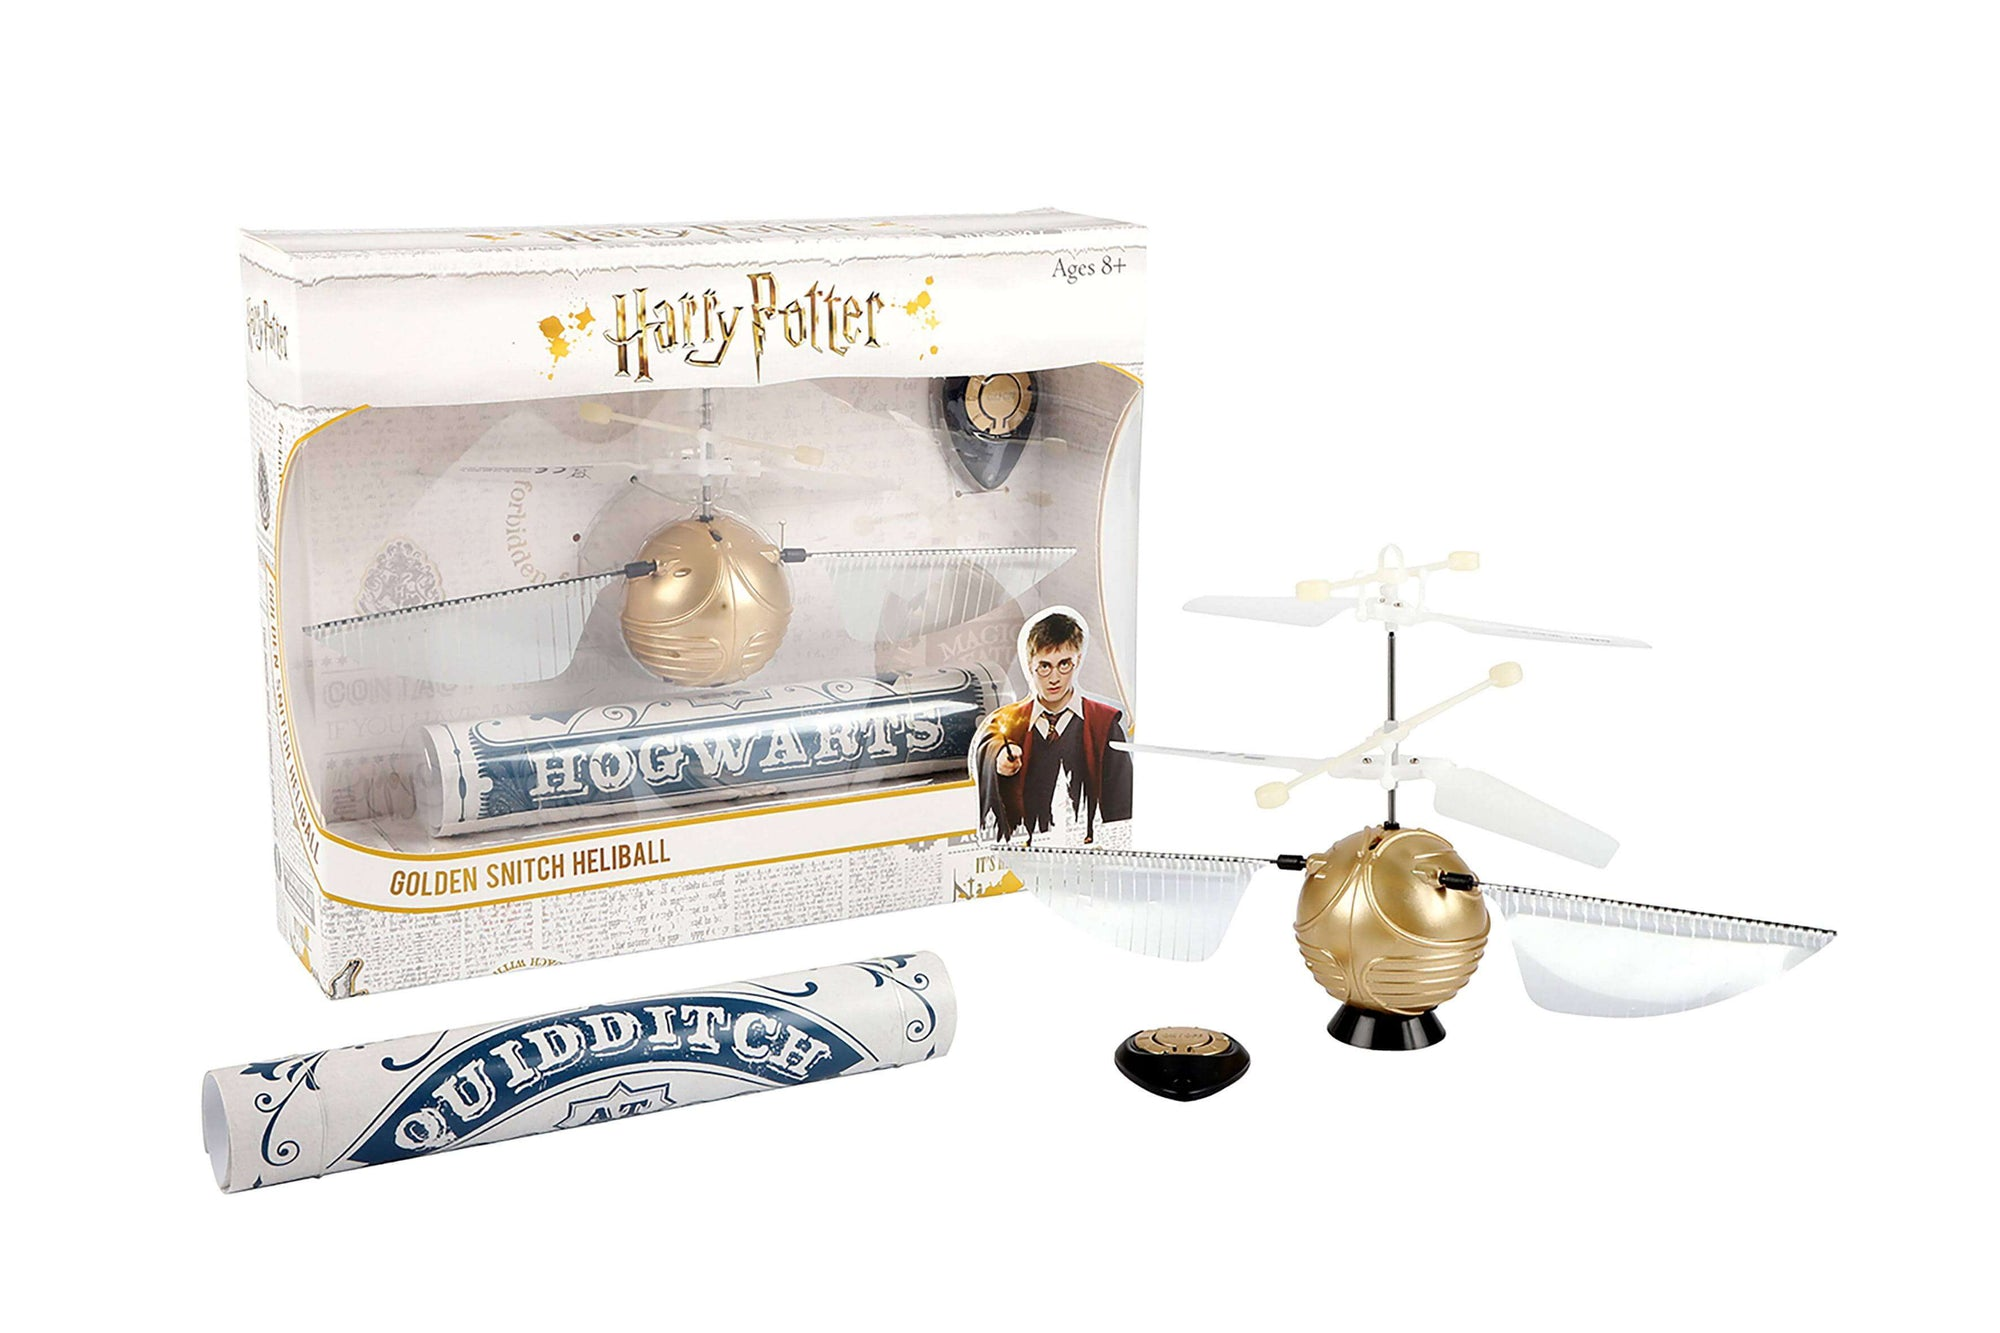 vif d'or volant harry potter boutique du sorcier